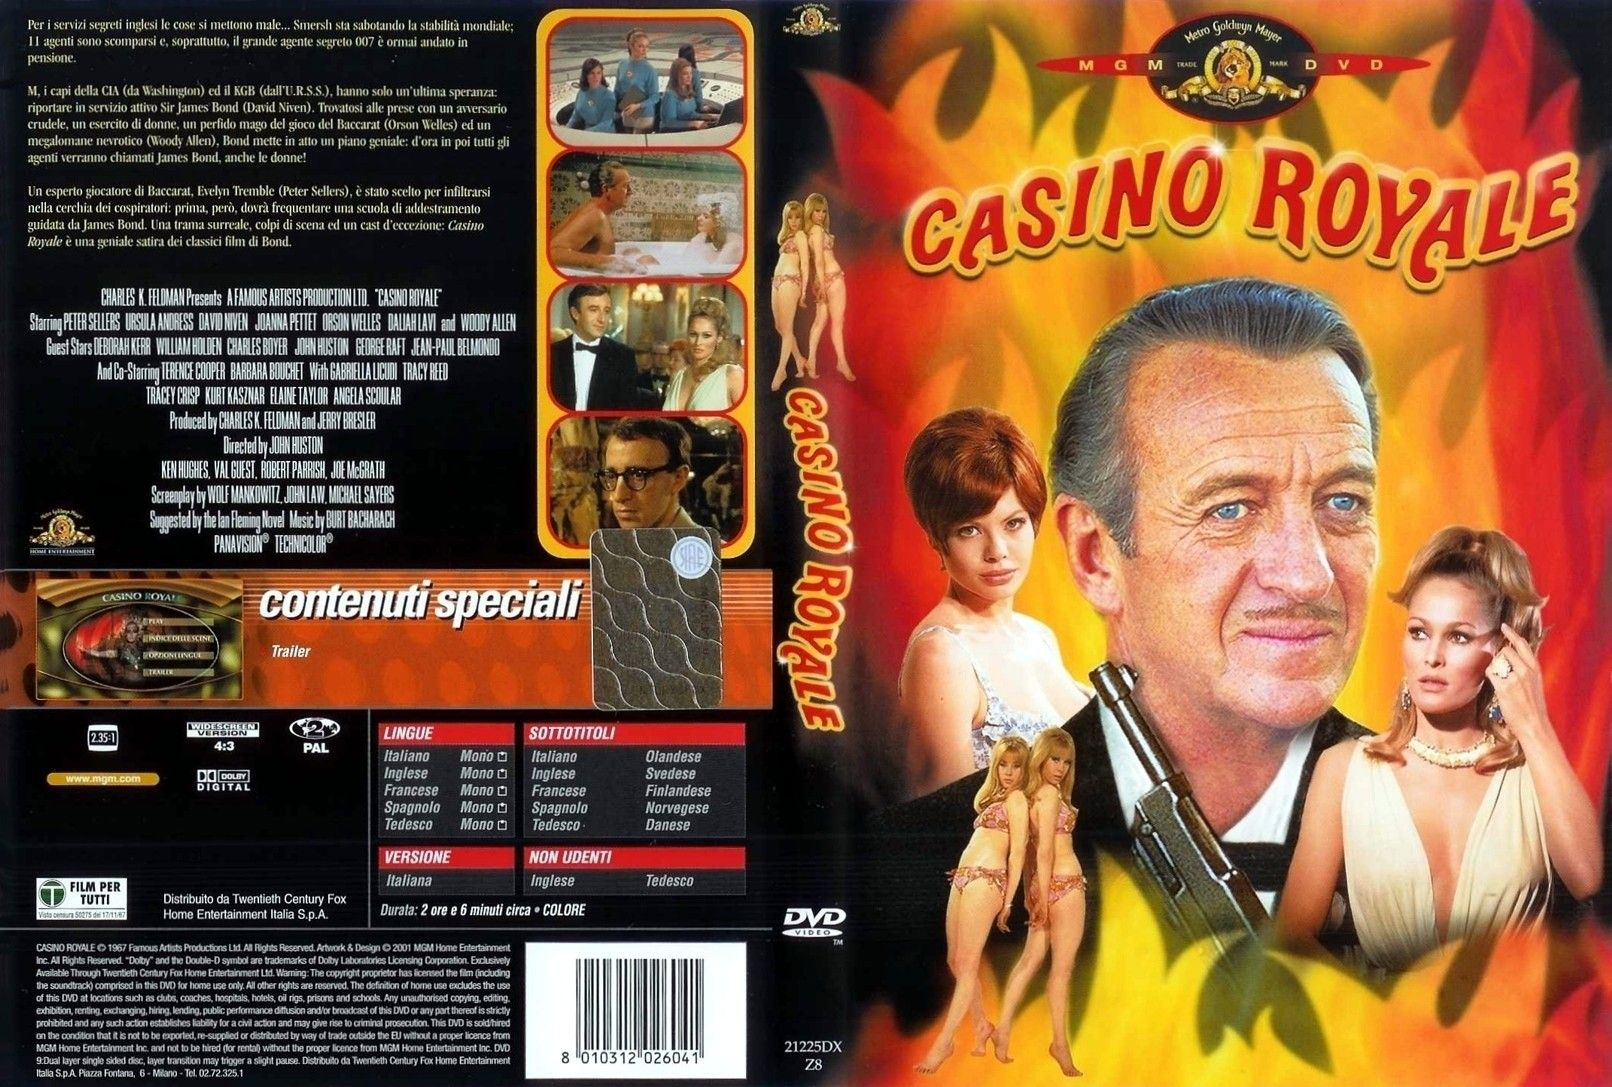 casino royale 2006 online free game book of ra